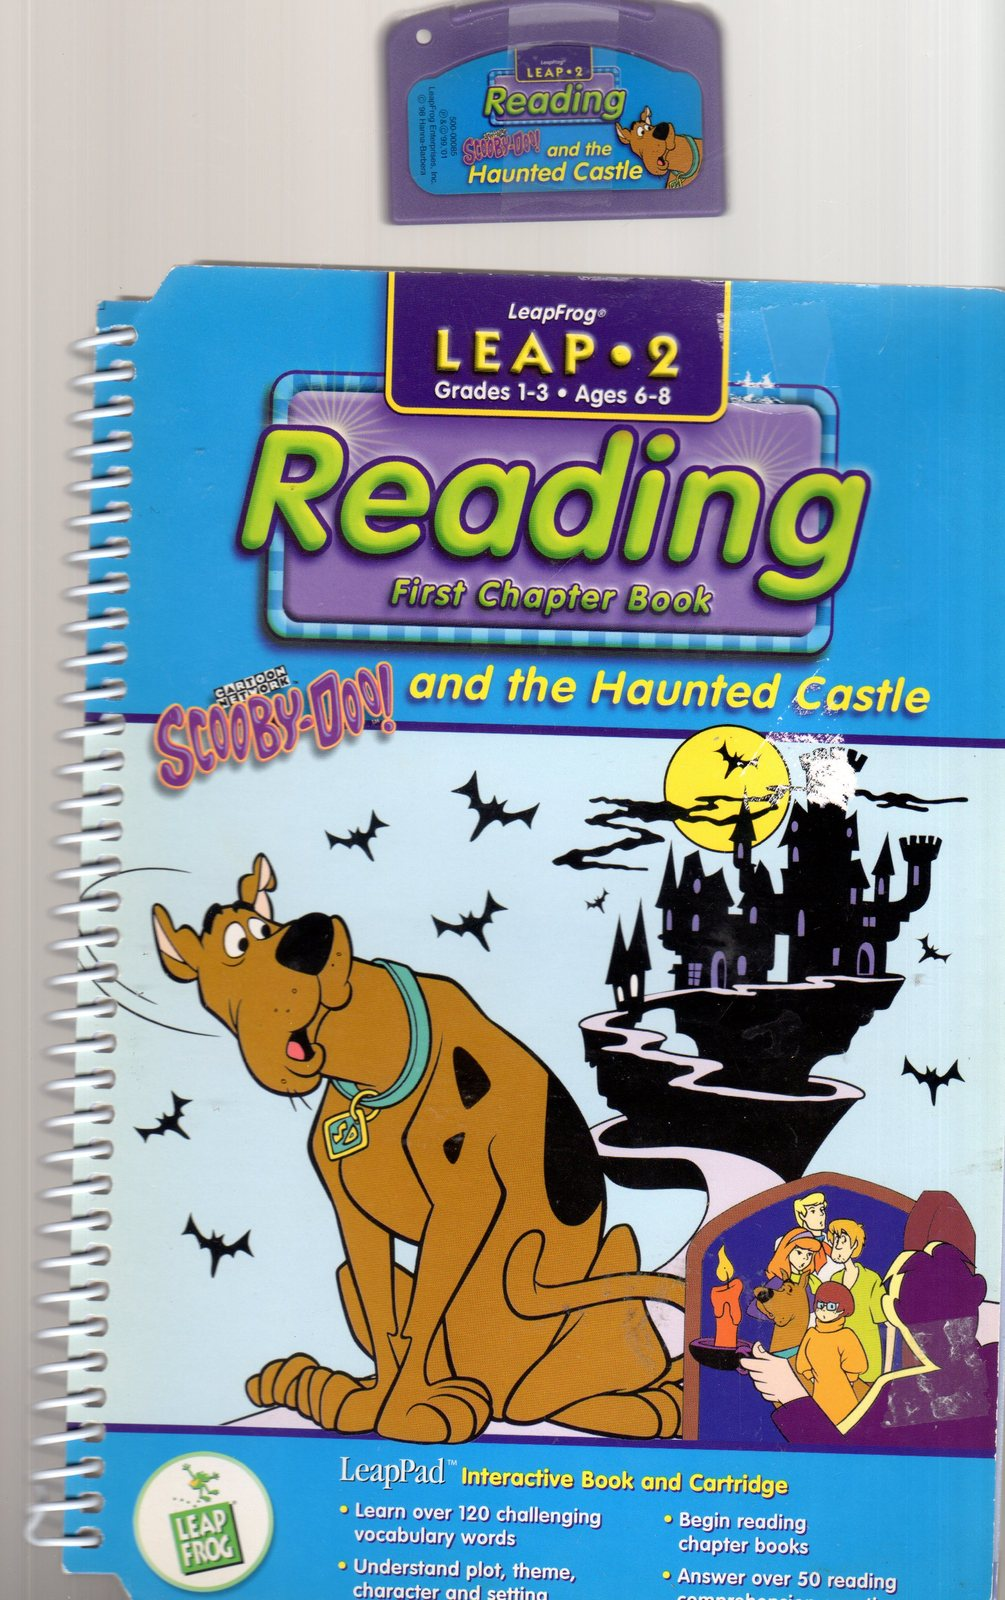 LeapFrog  Leap 2- Reading - Scooby - Doo! and The Haunted Castle